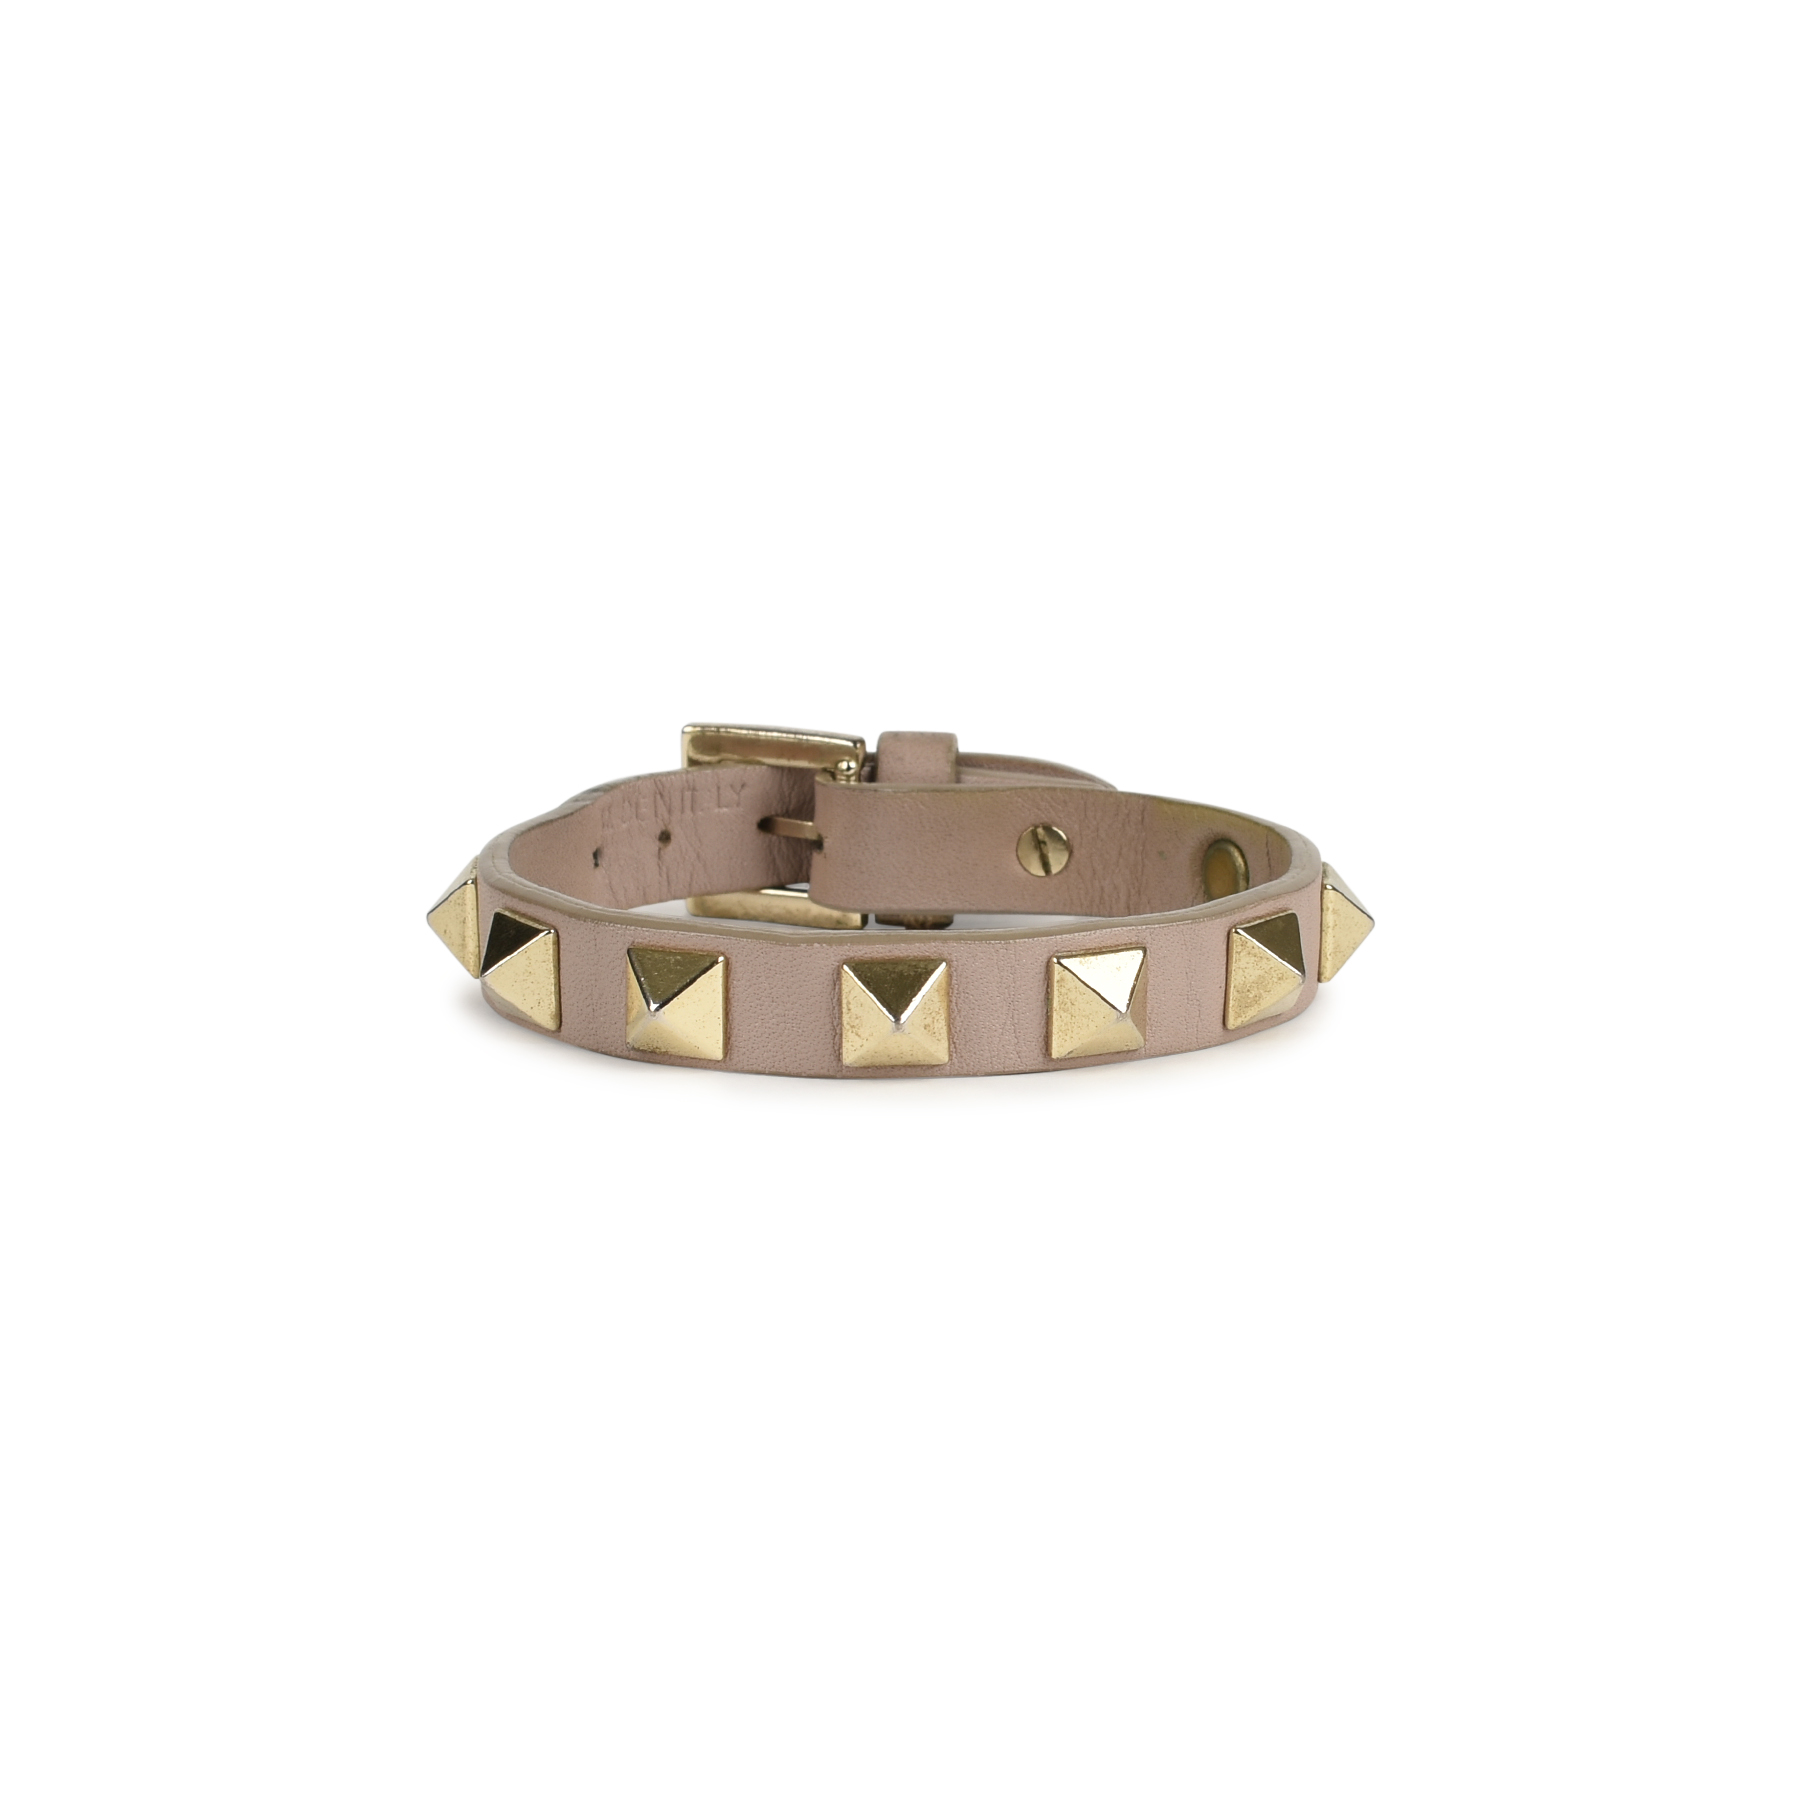 Authentic Pre Owned Valentino Rockstud Bracelet Pss 197 00054 The Fifth Collection